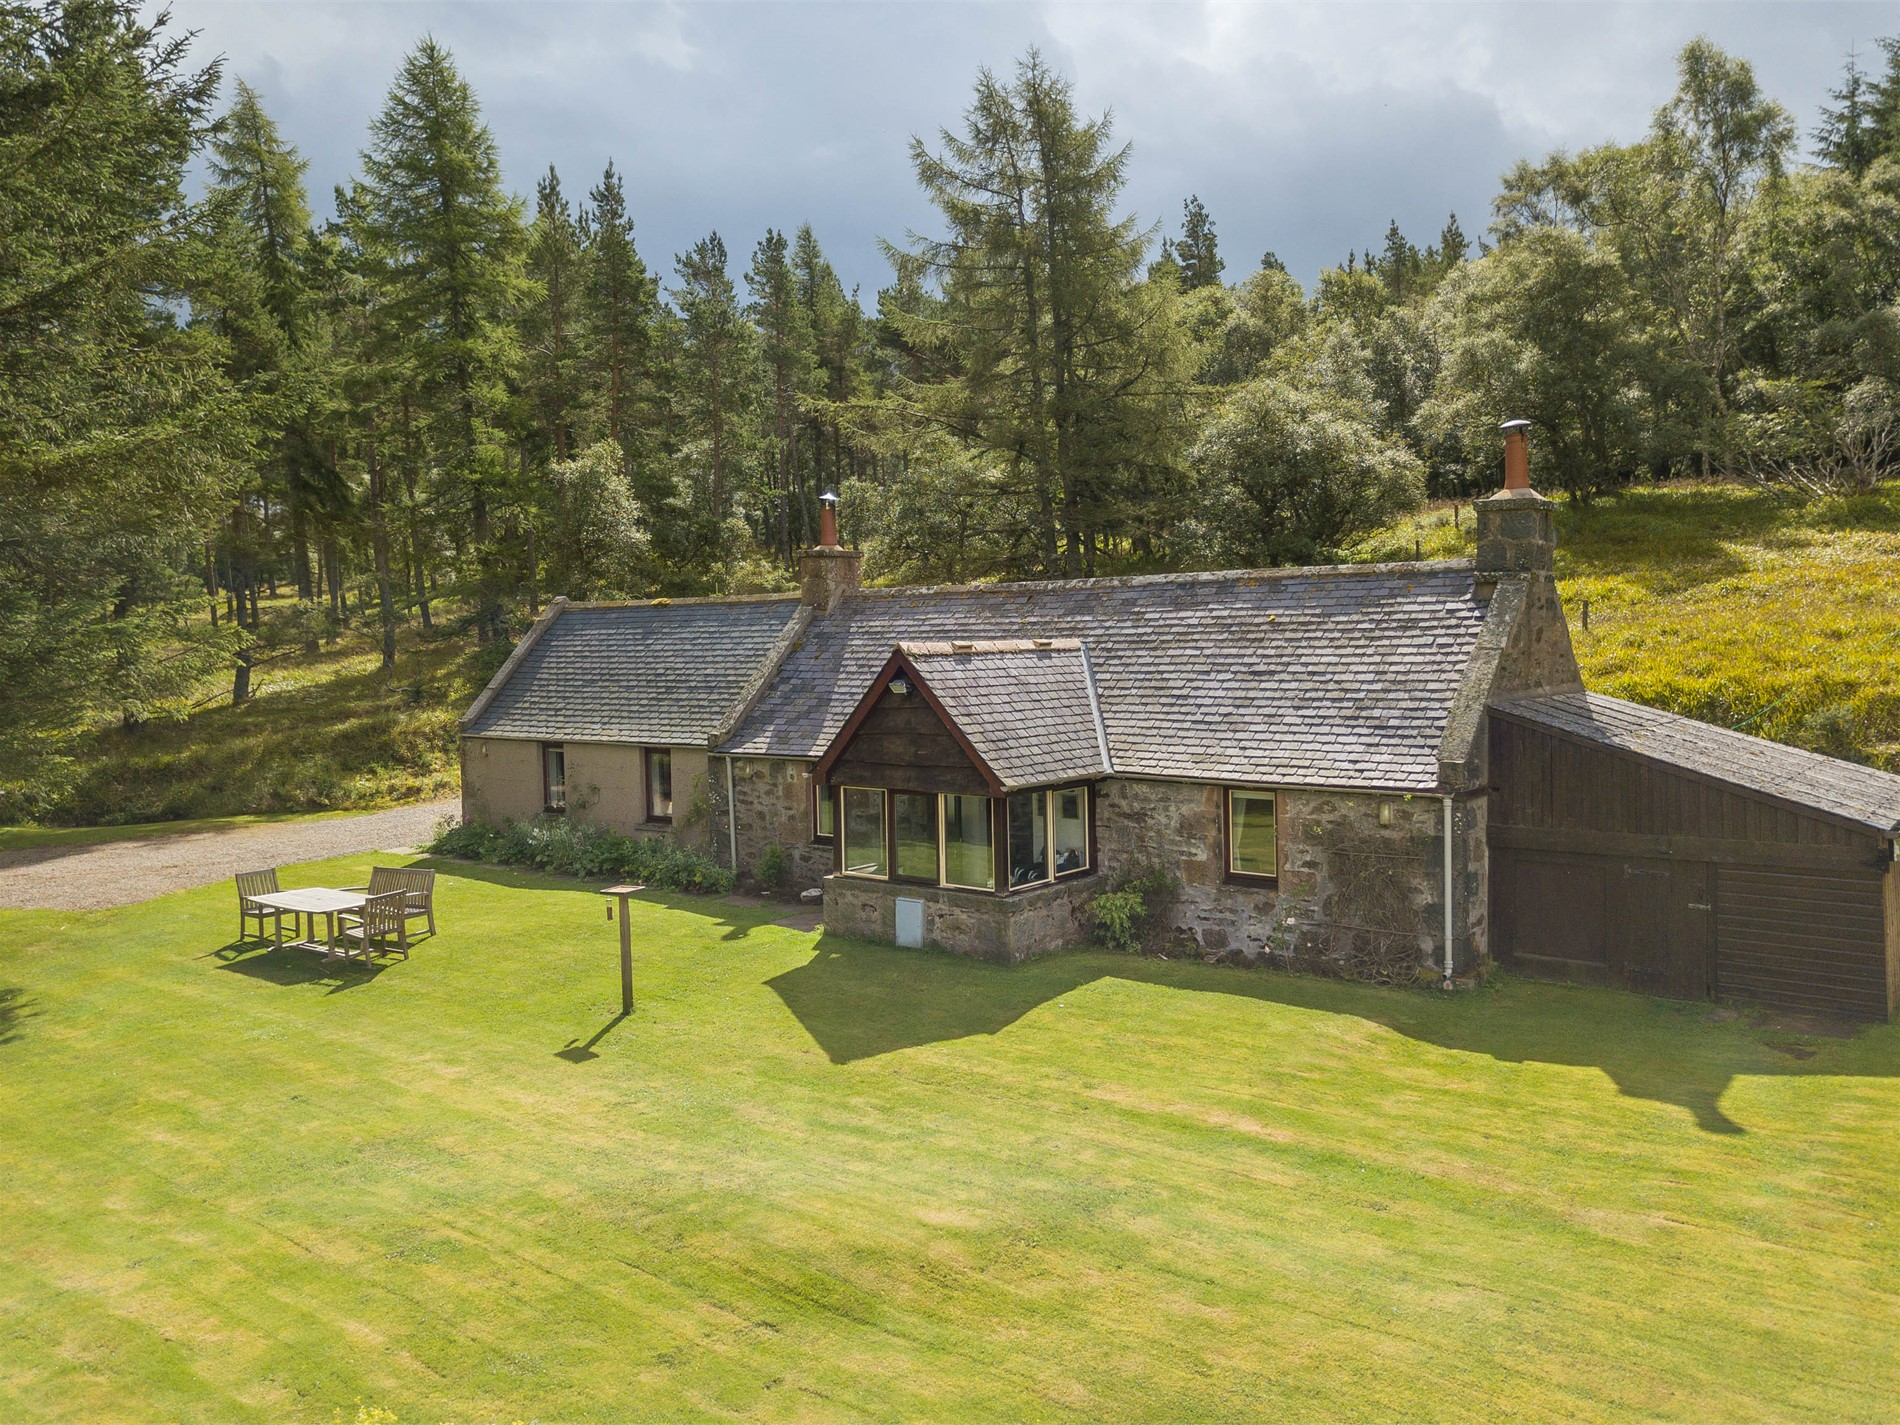 1 Bedroom Cottage in Aberdeenshire, Moray, Aberdeenshire & The Coastal Trail